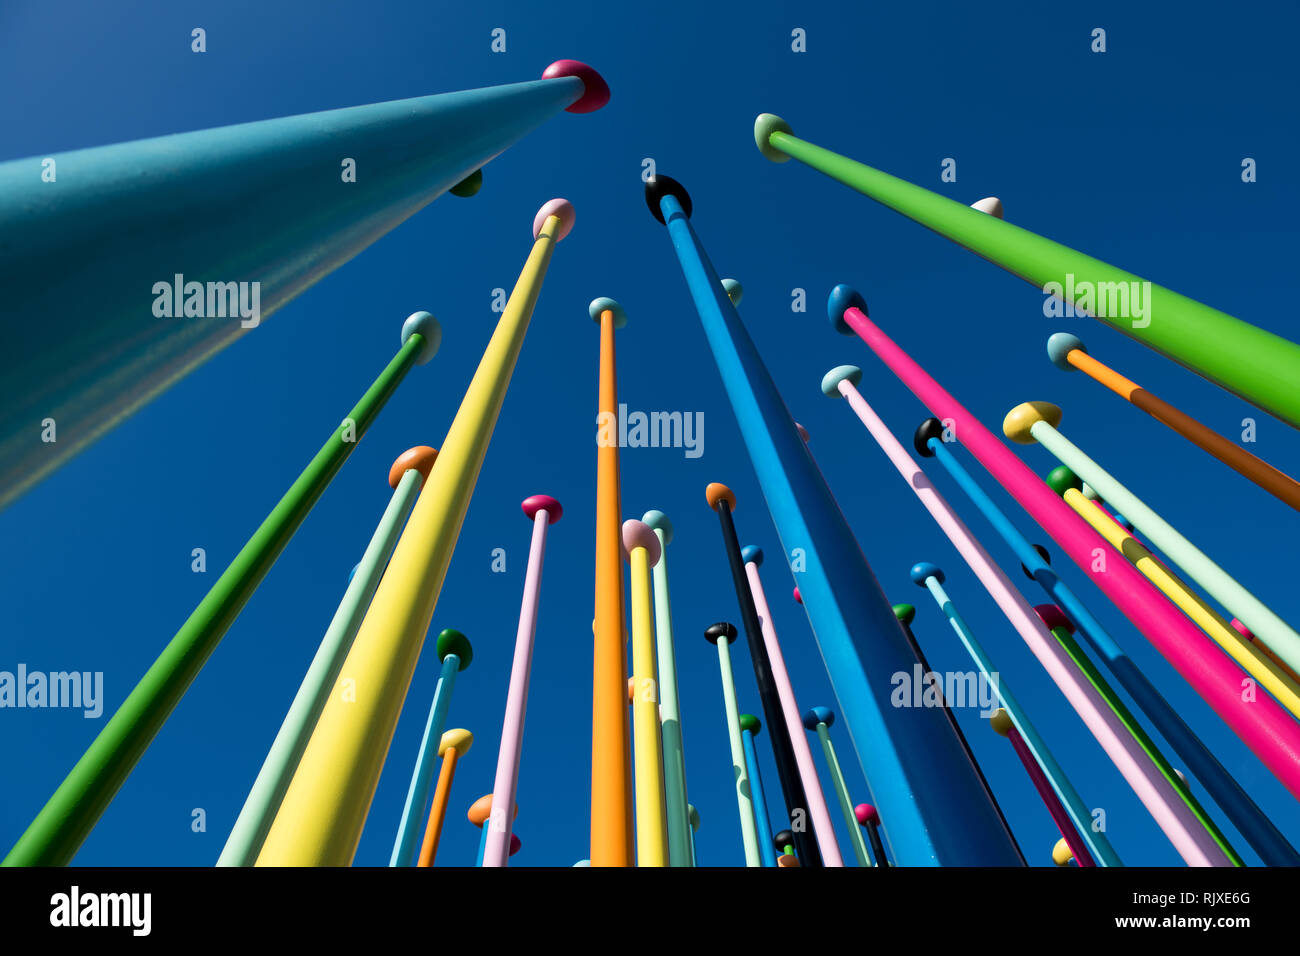 Low angle of colorful thin poles against blue sky. Art installation. Positive and bright background concept - Stock Image